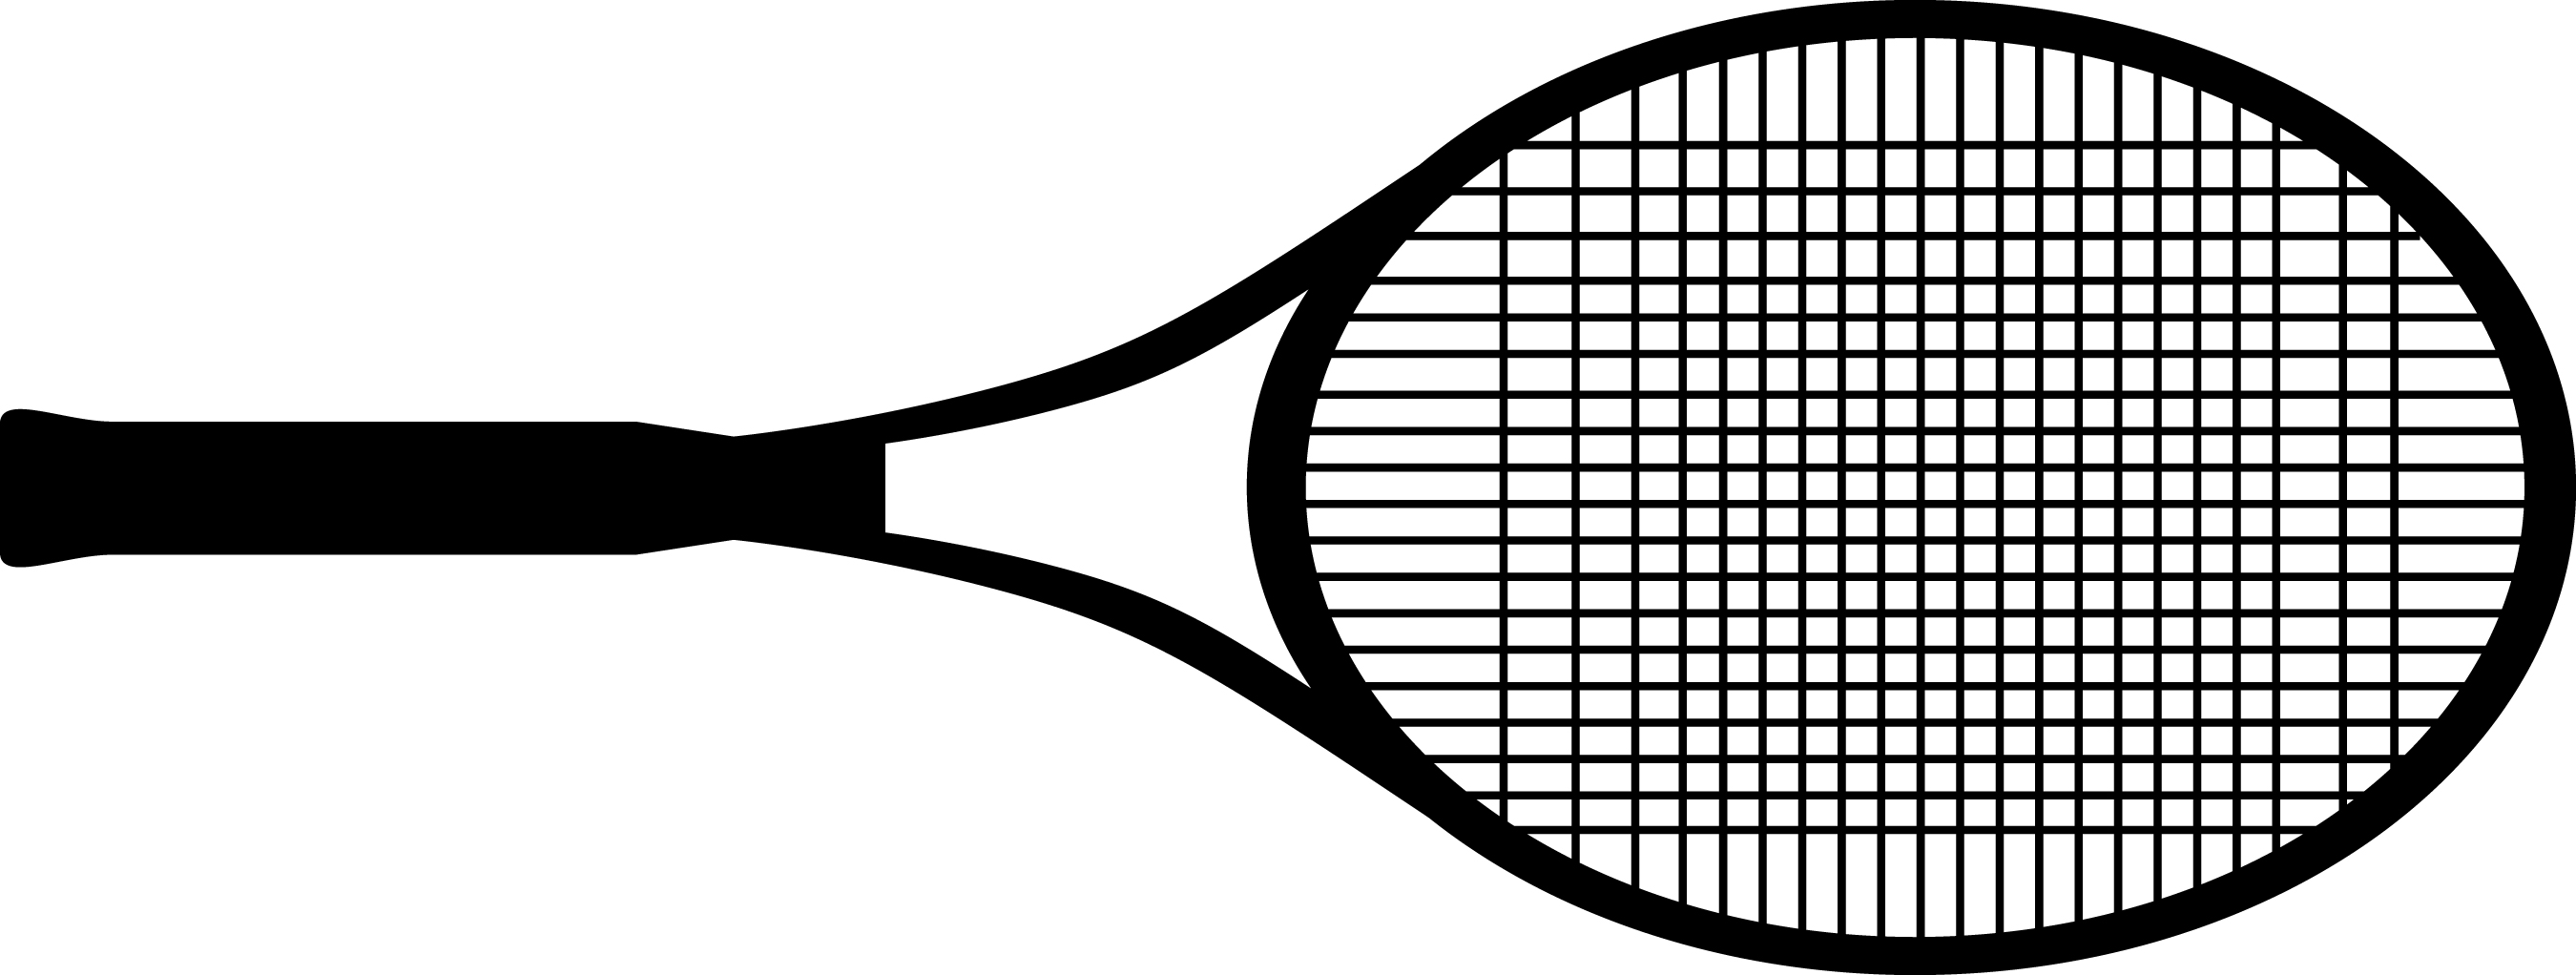 Tennis Racket Silhouette Images Pictures-Tennis Racket Silhouette images pictures - NearPics. Pictures Of Tennis Rackets. head_tennis_racquet_microgel_. Tennis Racquet Clipart-16